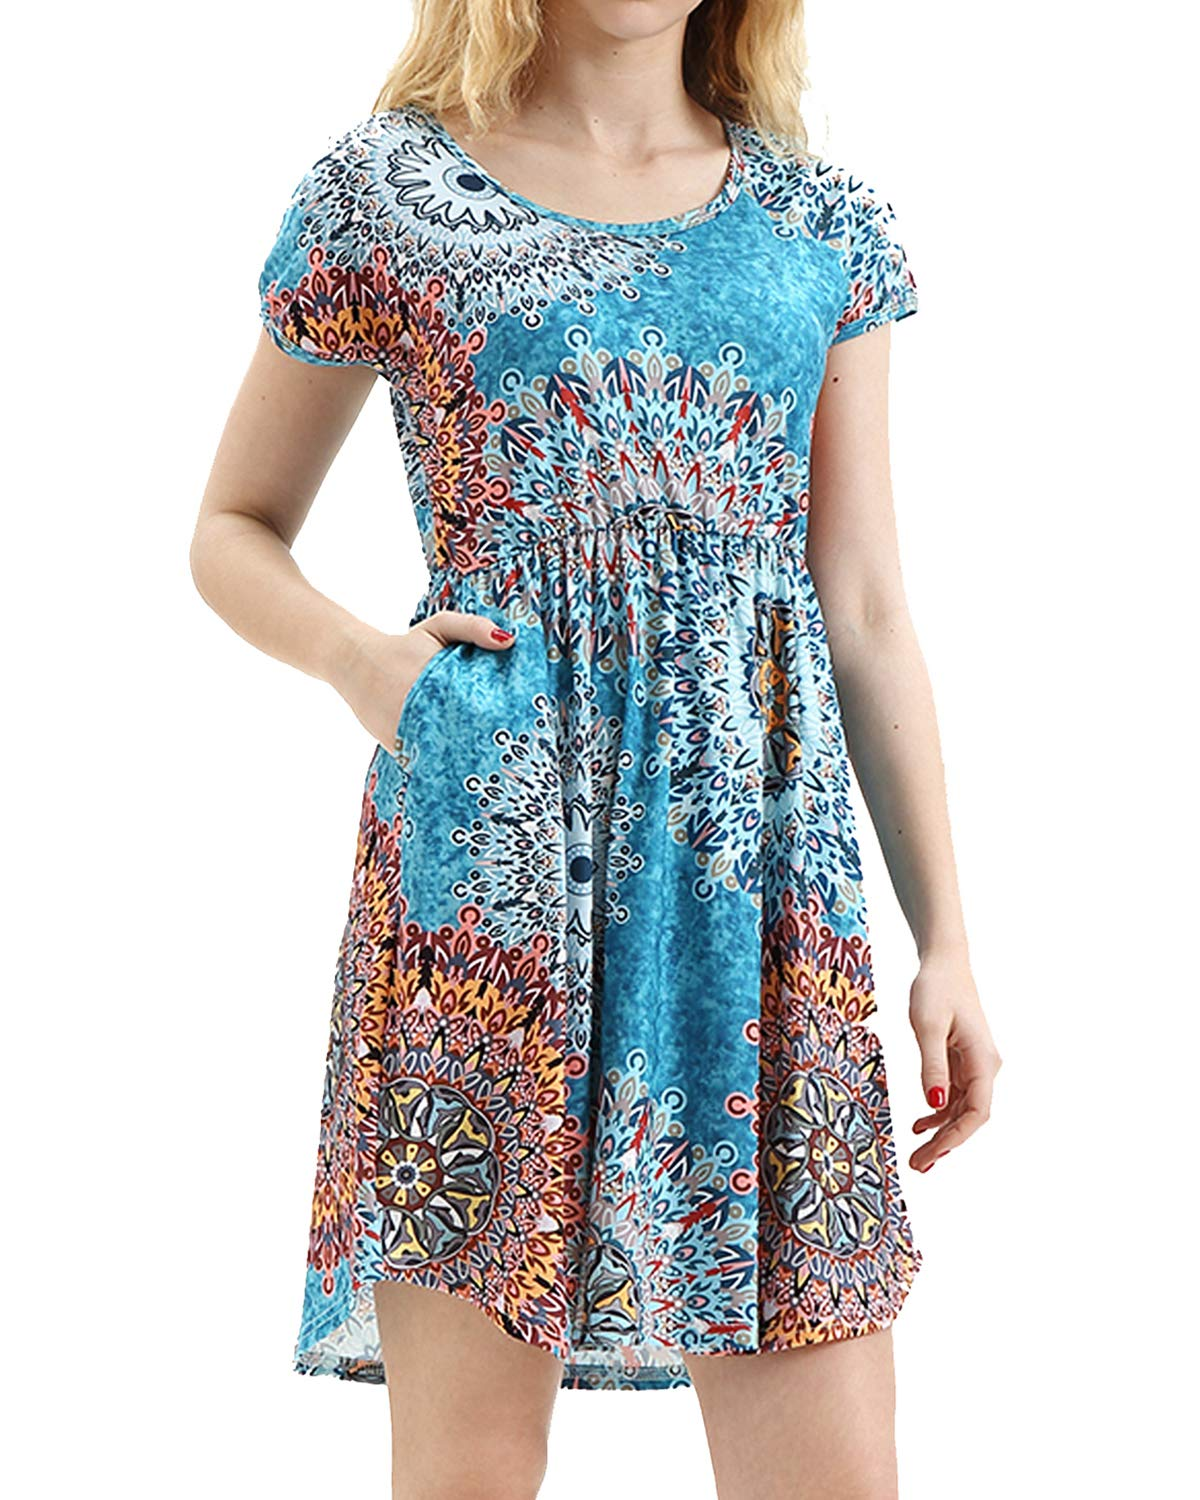 deesdail Modest Dresses for Women, Ladies Round Neck Short Sleeve Petite Midi Dress Slim Fit Floral Printed Long Tunic with Pockets Mix Blue Flower M